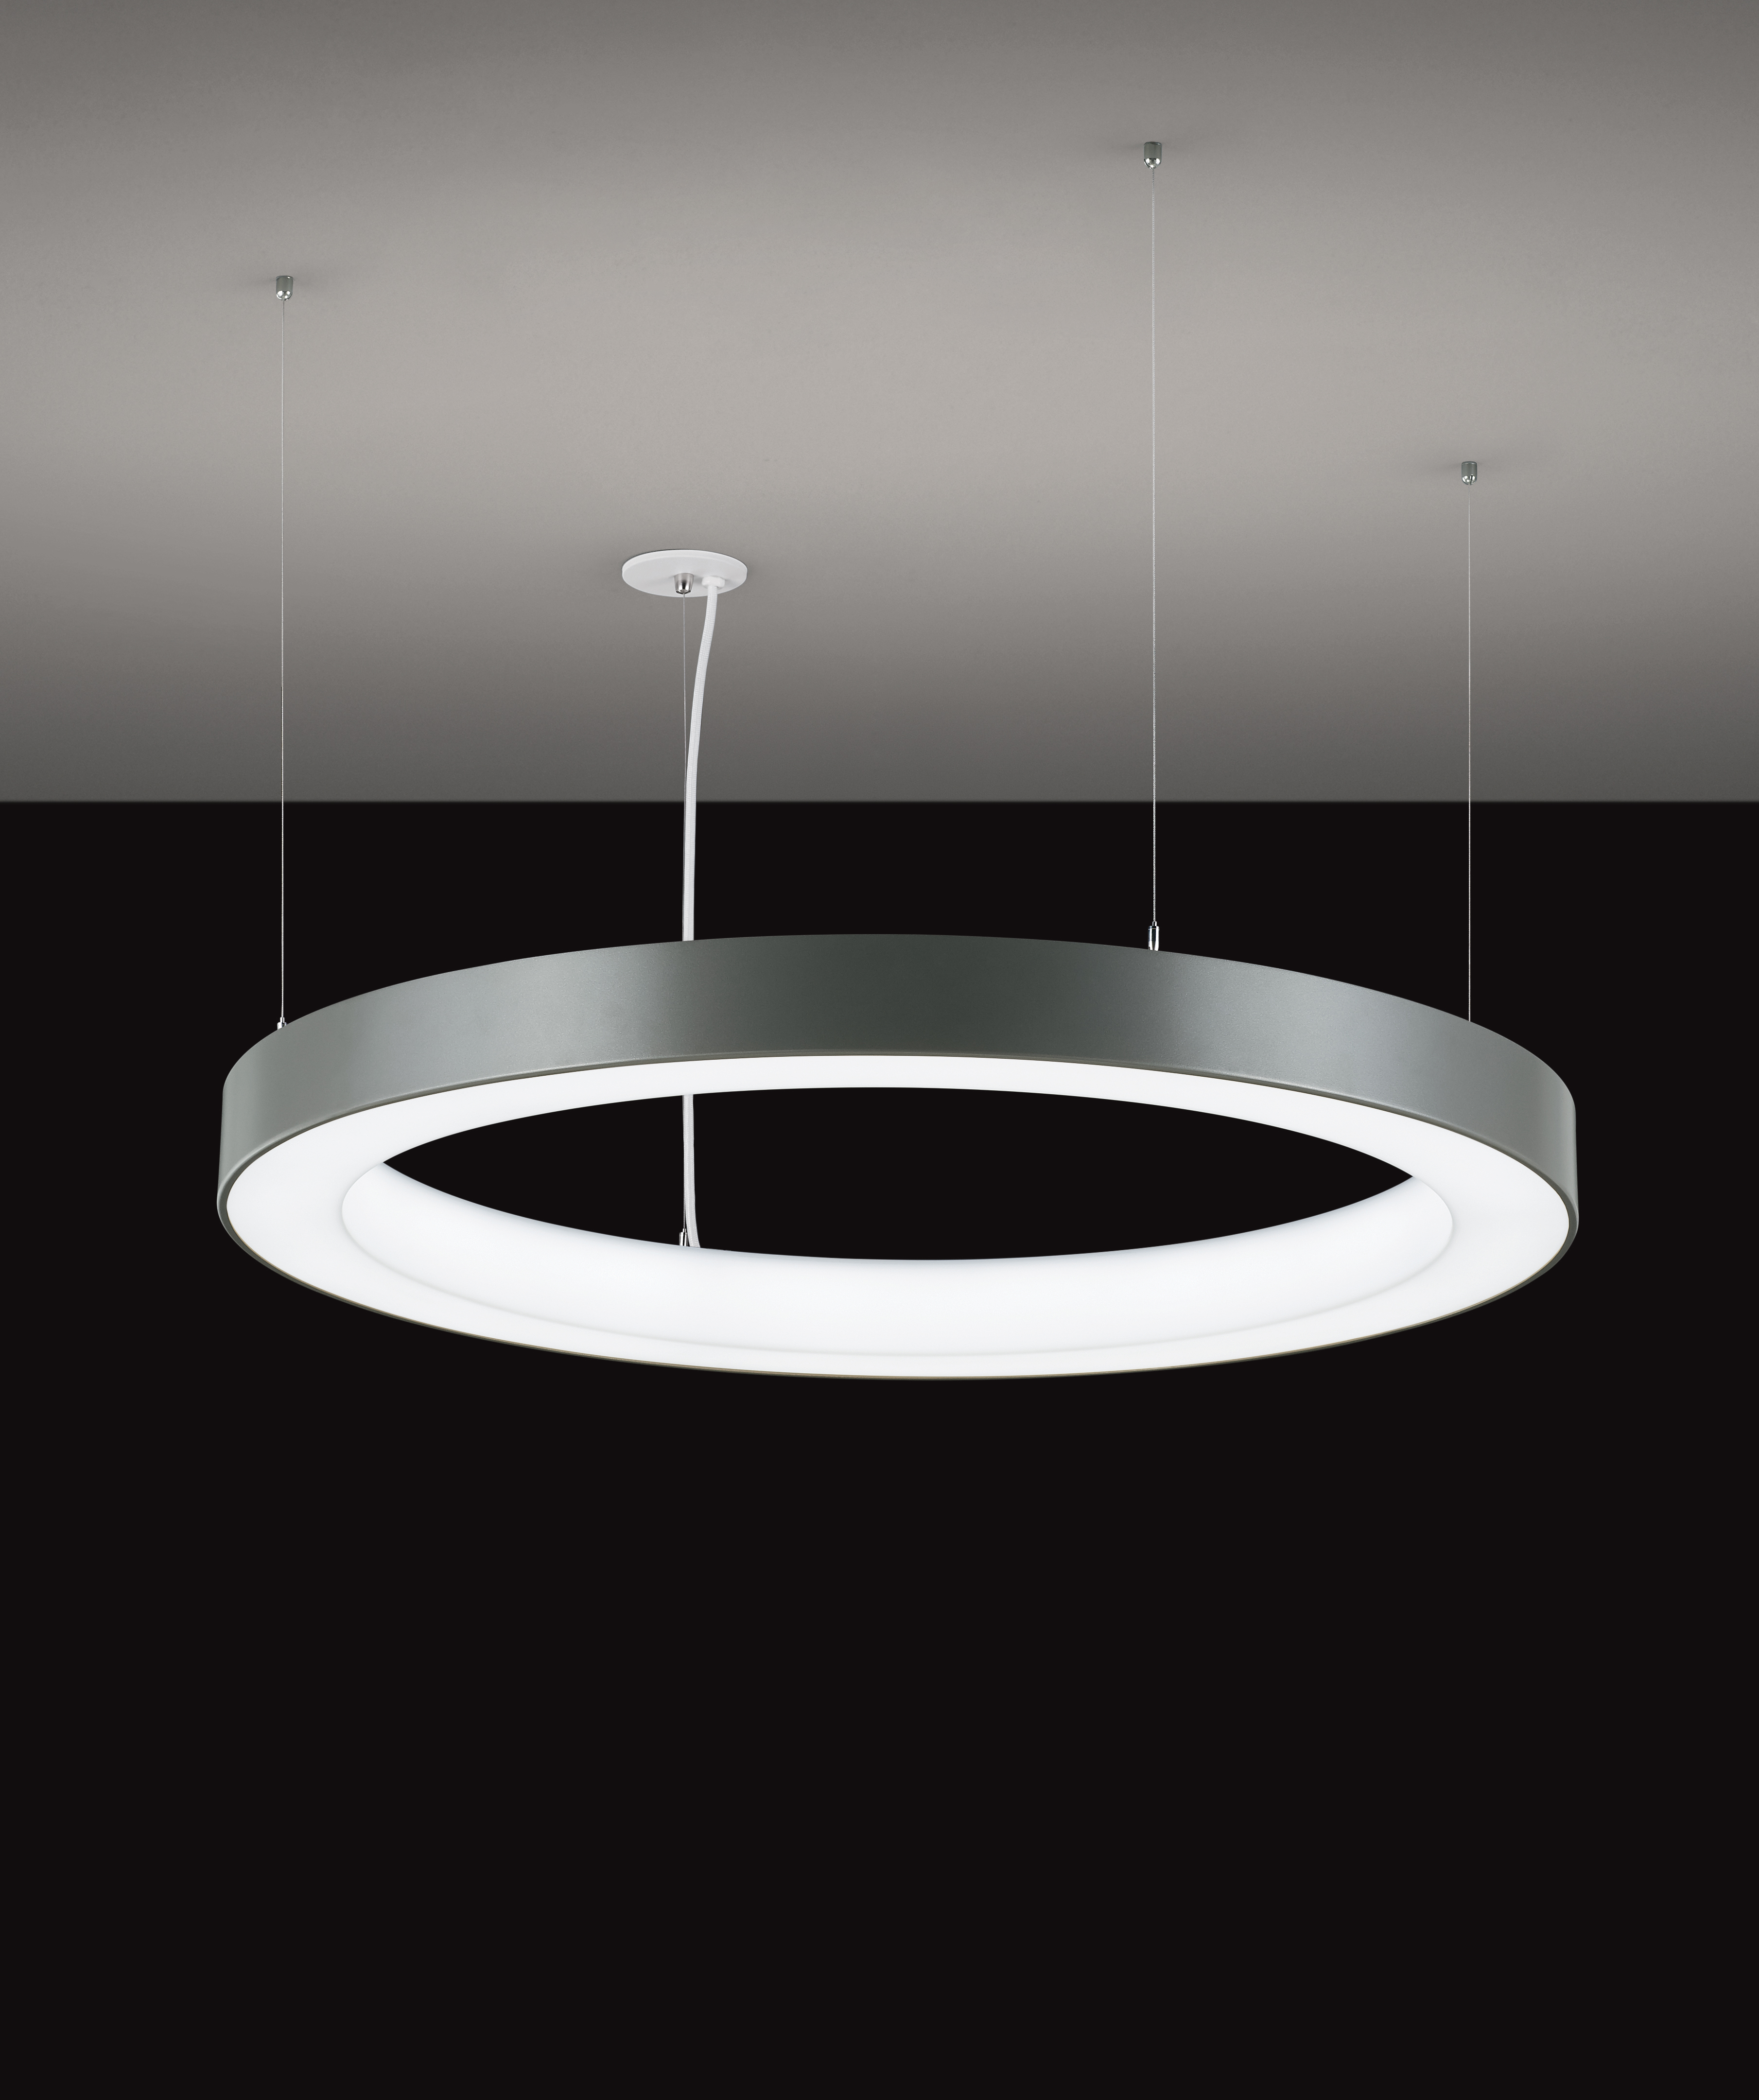 Glowring Pendant Ocl Architectural Lighting